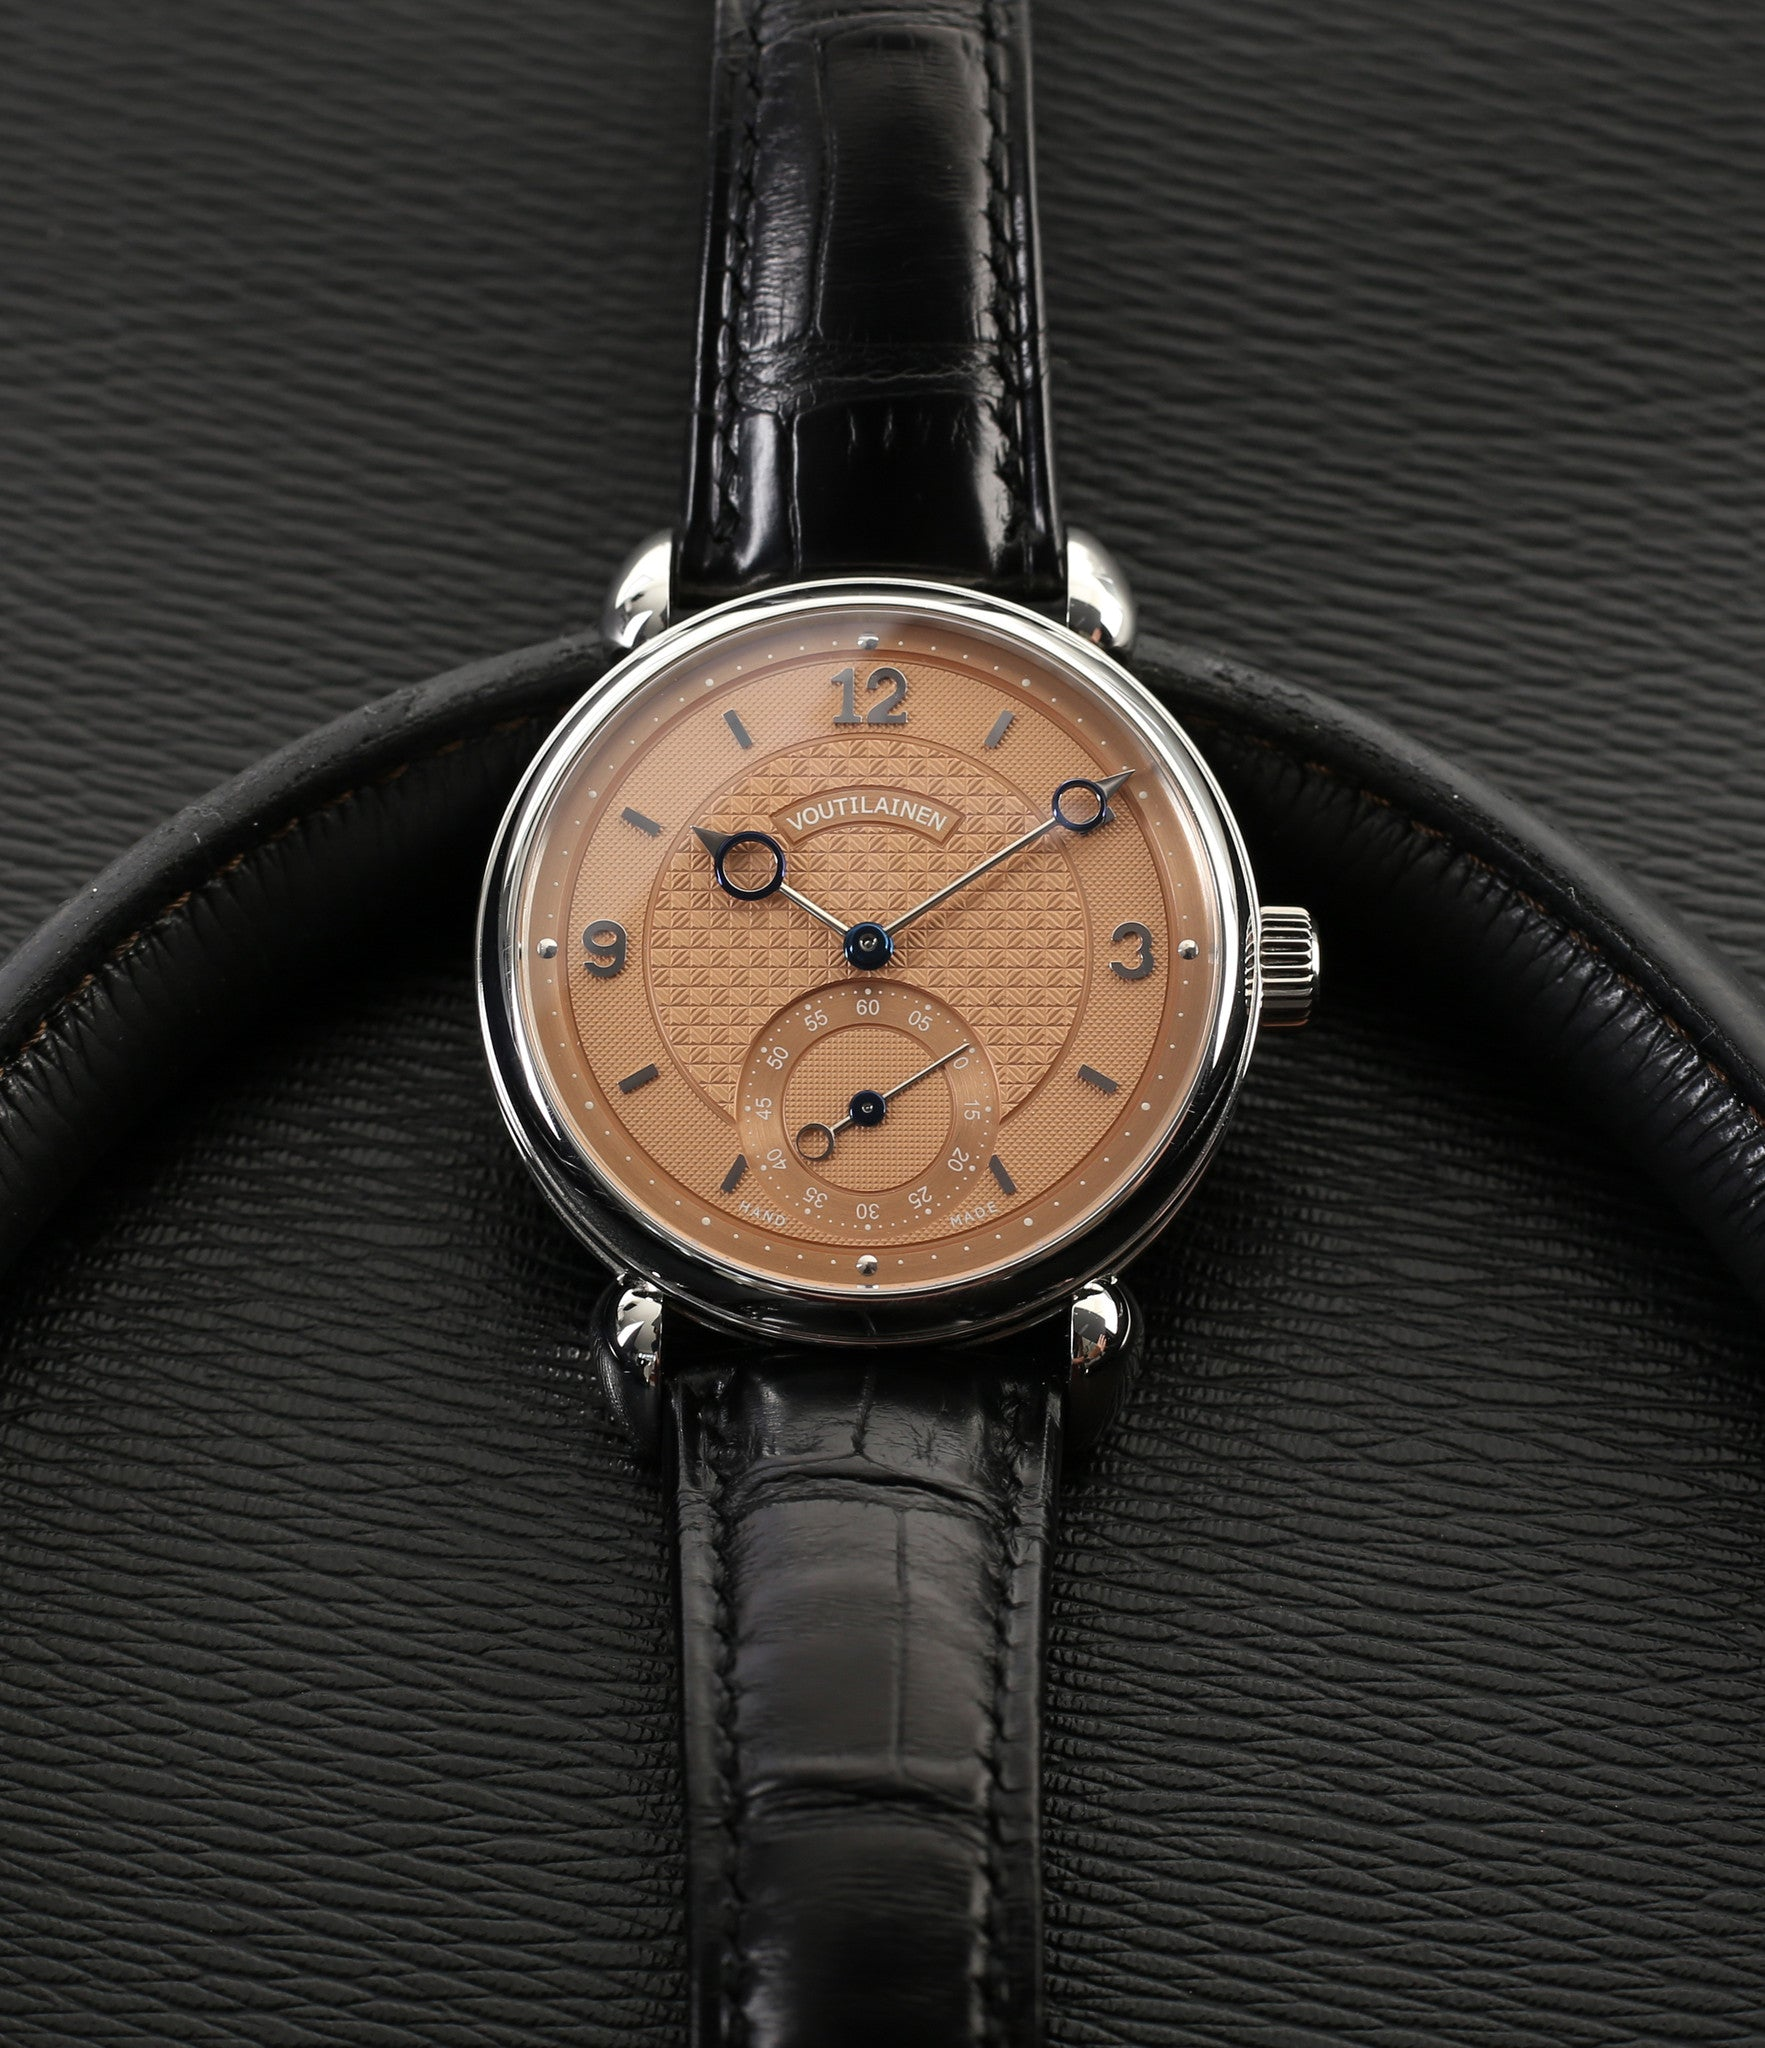 buy Kari Voutilainen Prototype Vingt-8 unique piece rare time-only dress watch with Besancon Observatory certificate from independent watchmake for sale online WATCH XCHNAGE London